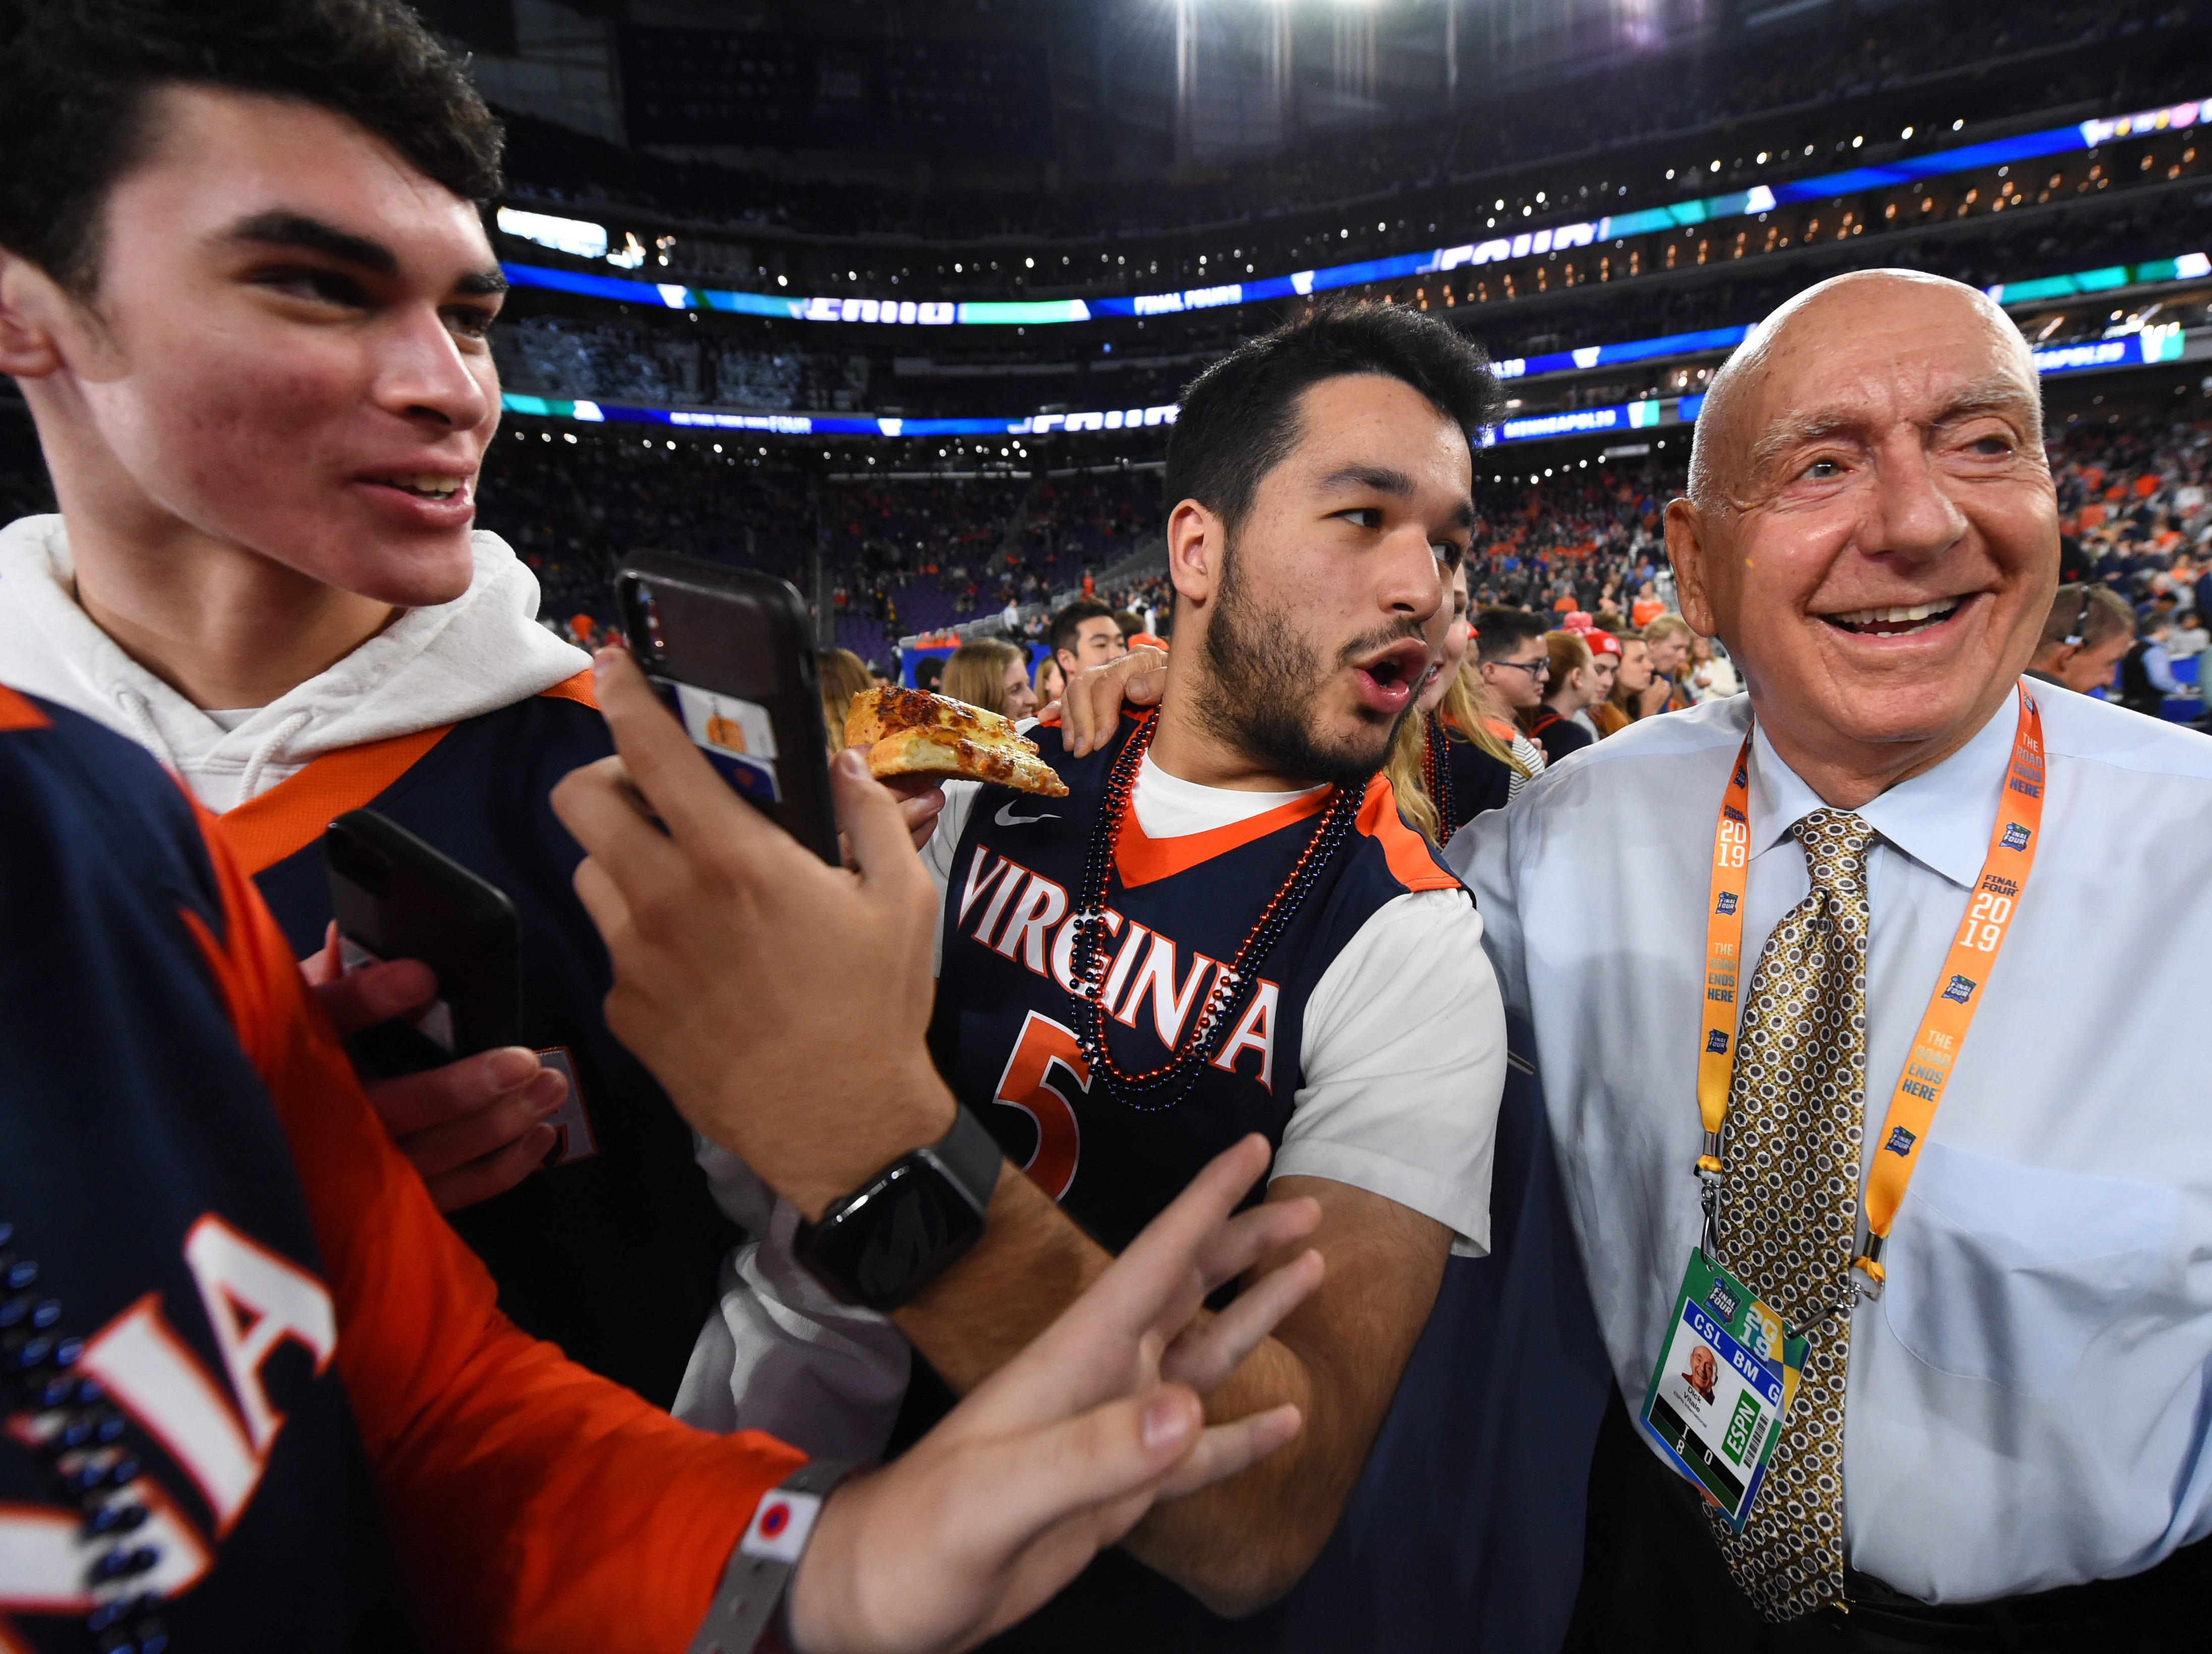 Dick Vitale poses for a photo with Virginia Cavaliers fans.